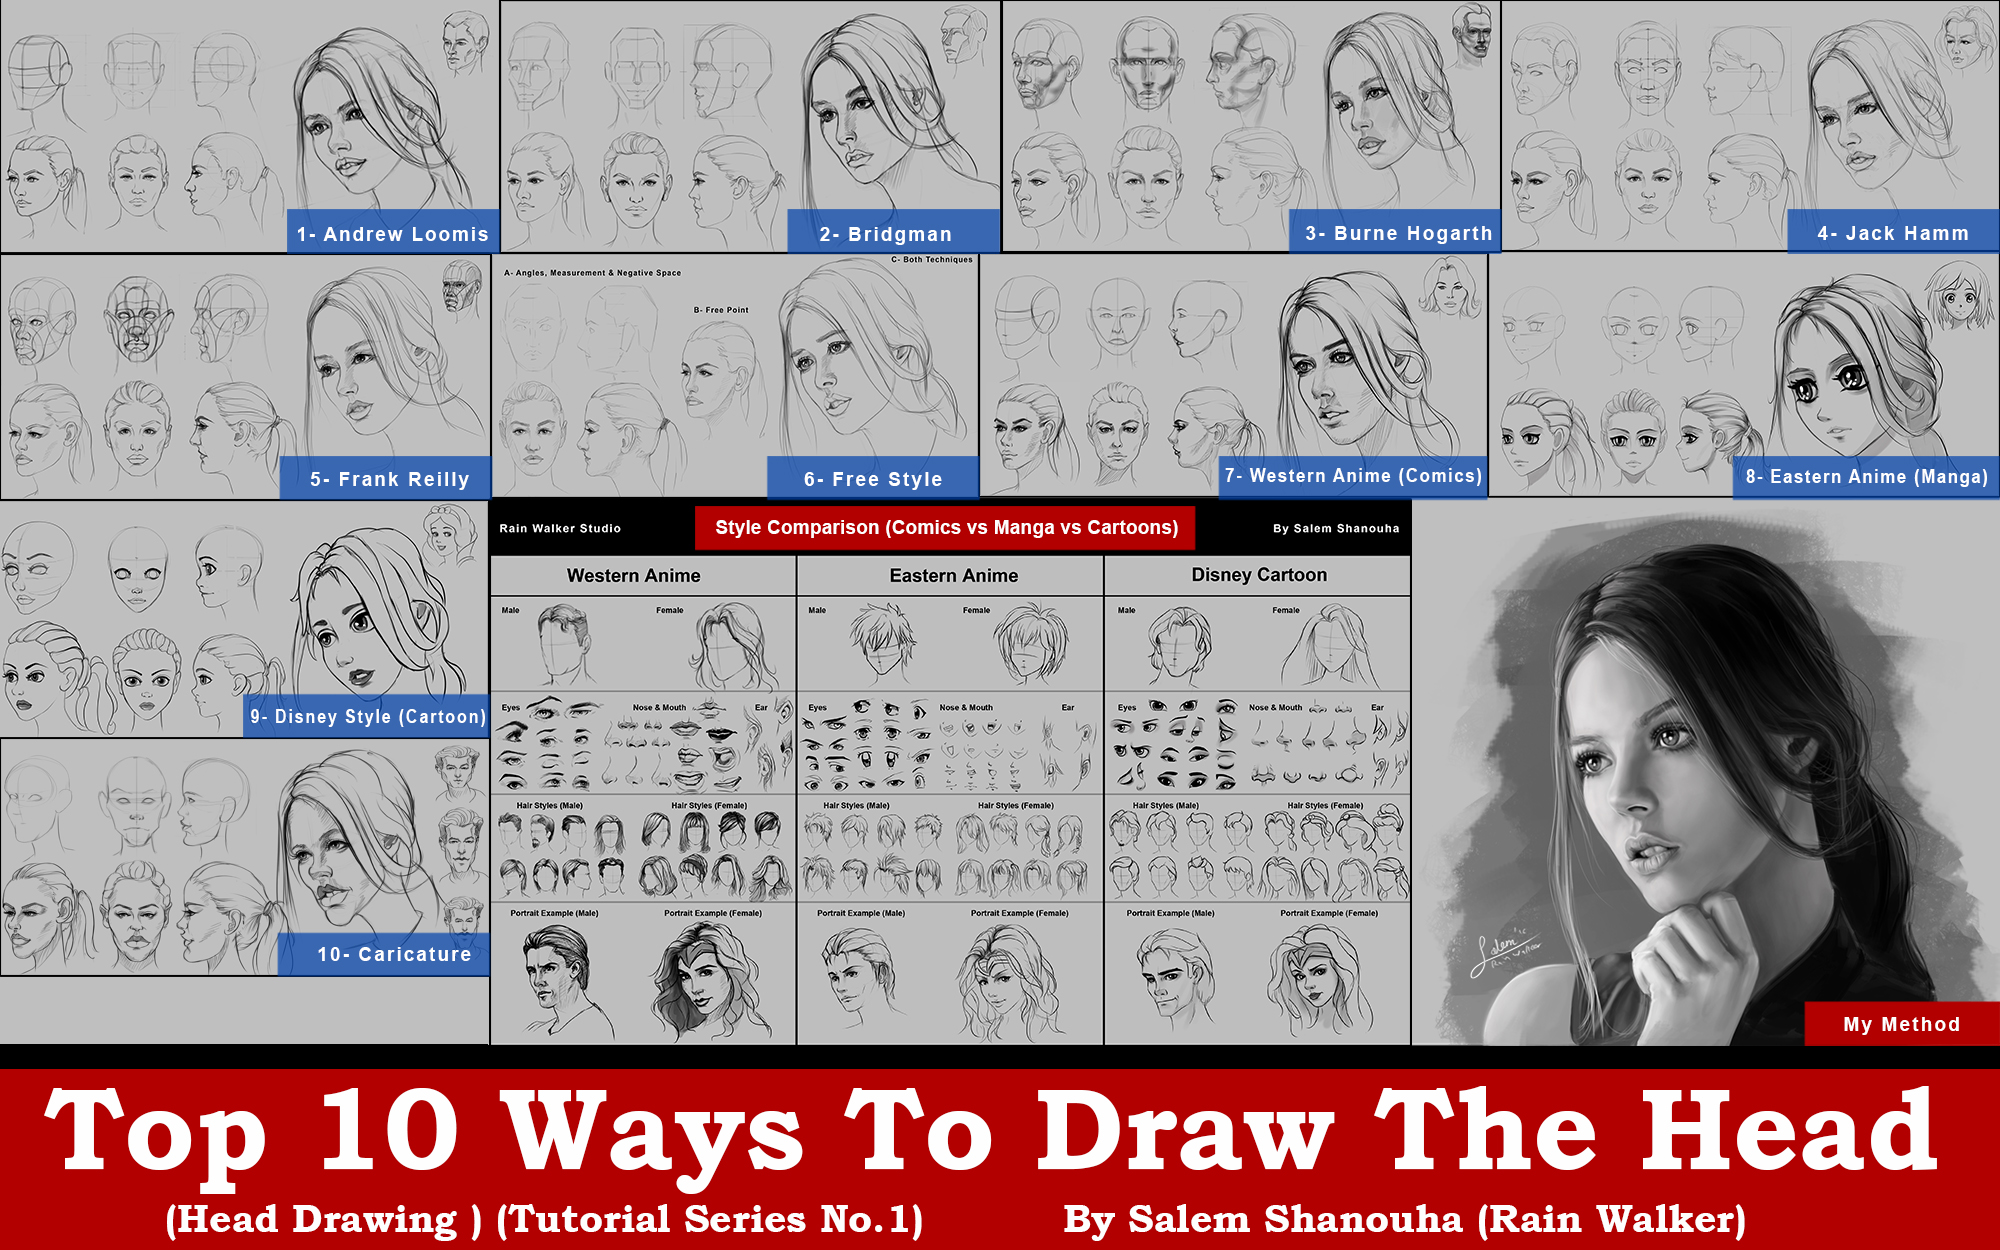 """Top 10 ways to draw the head"" Video tutorial series"